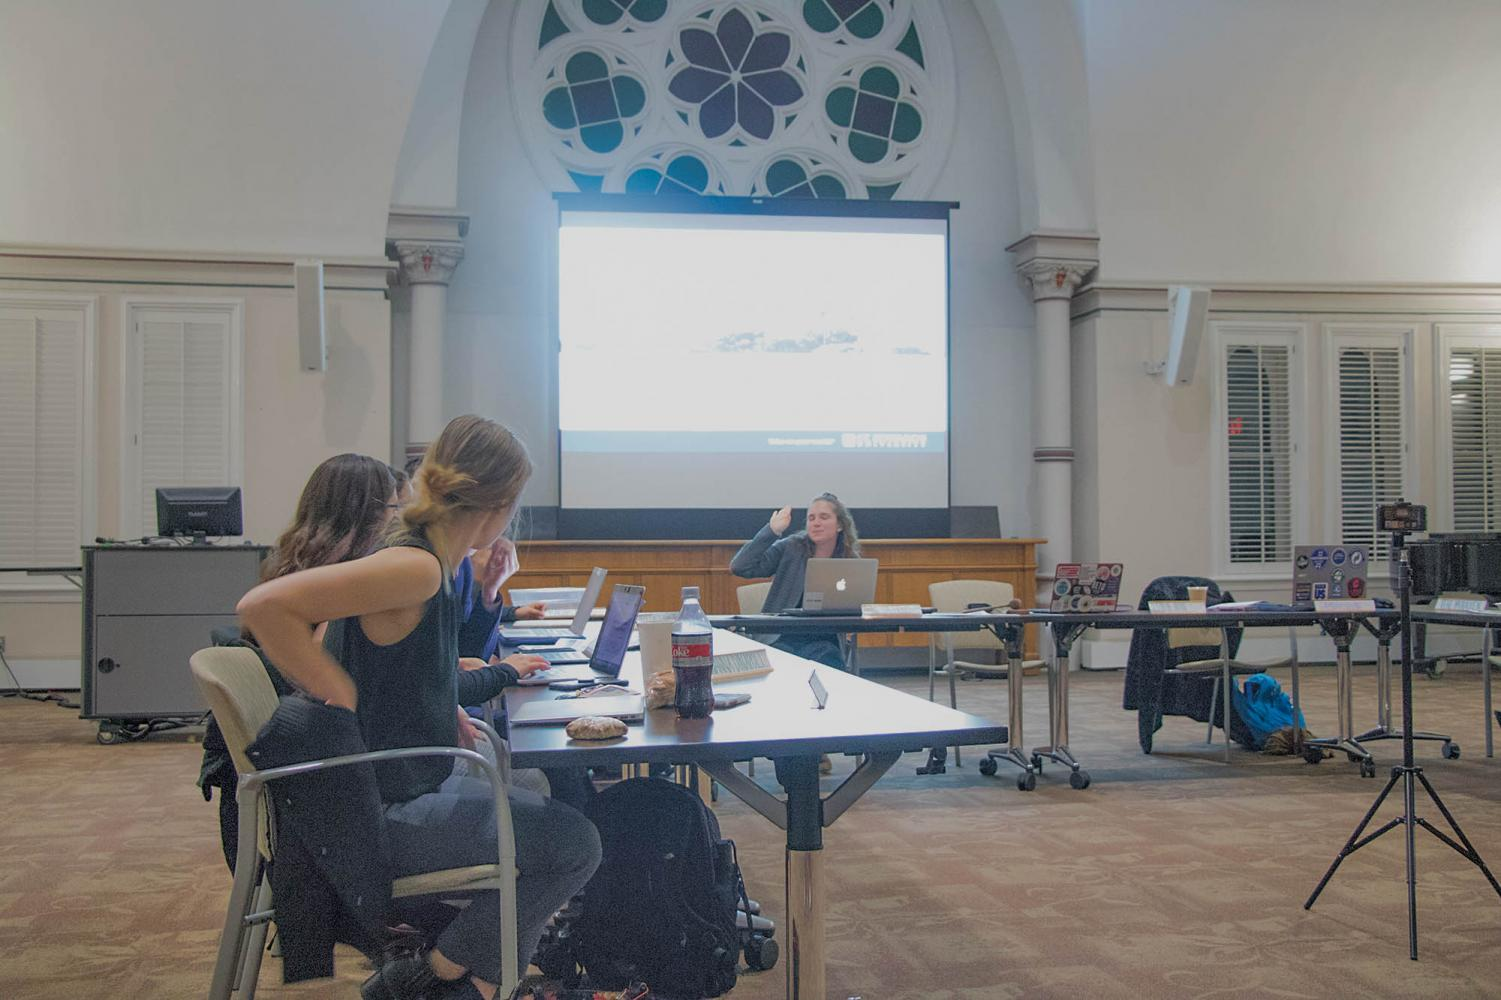 Student Government Association senators changed the phrasing and content of some bylaws in their last formal meeting of the semester